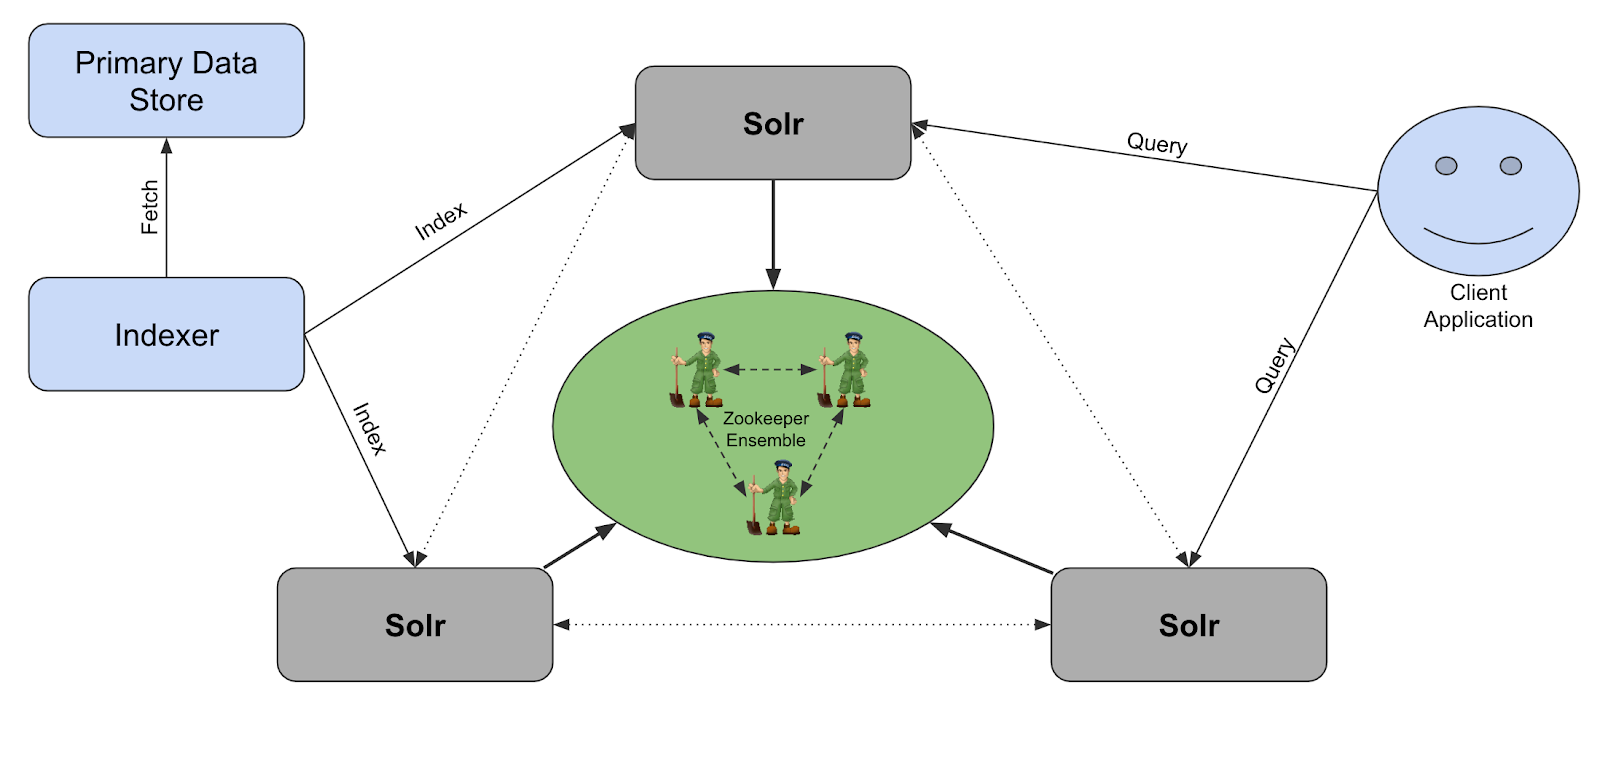 what solr metrics to monitor